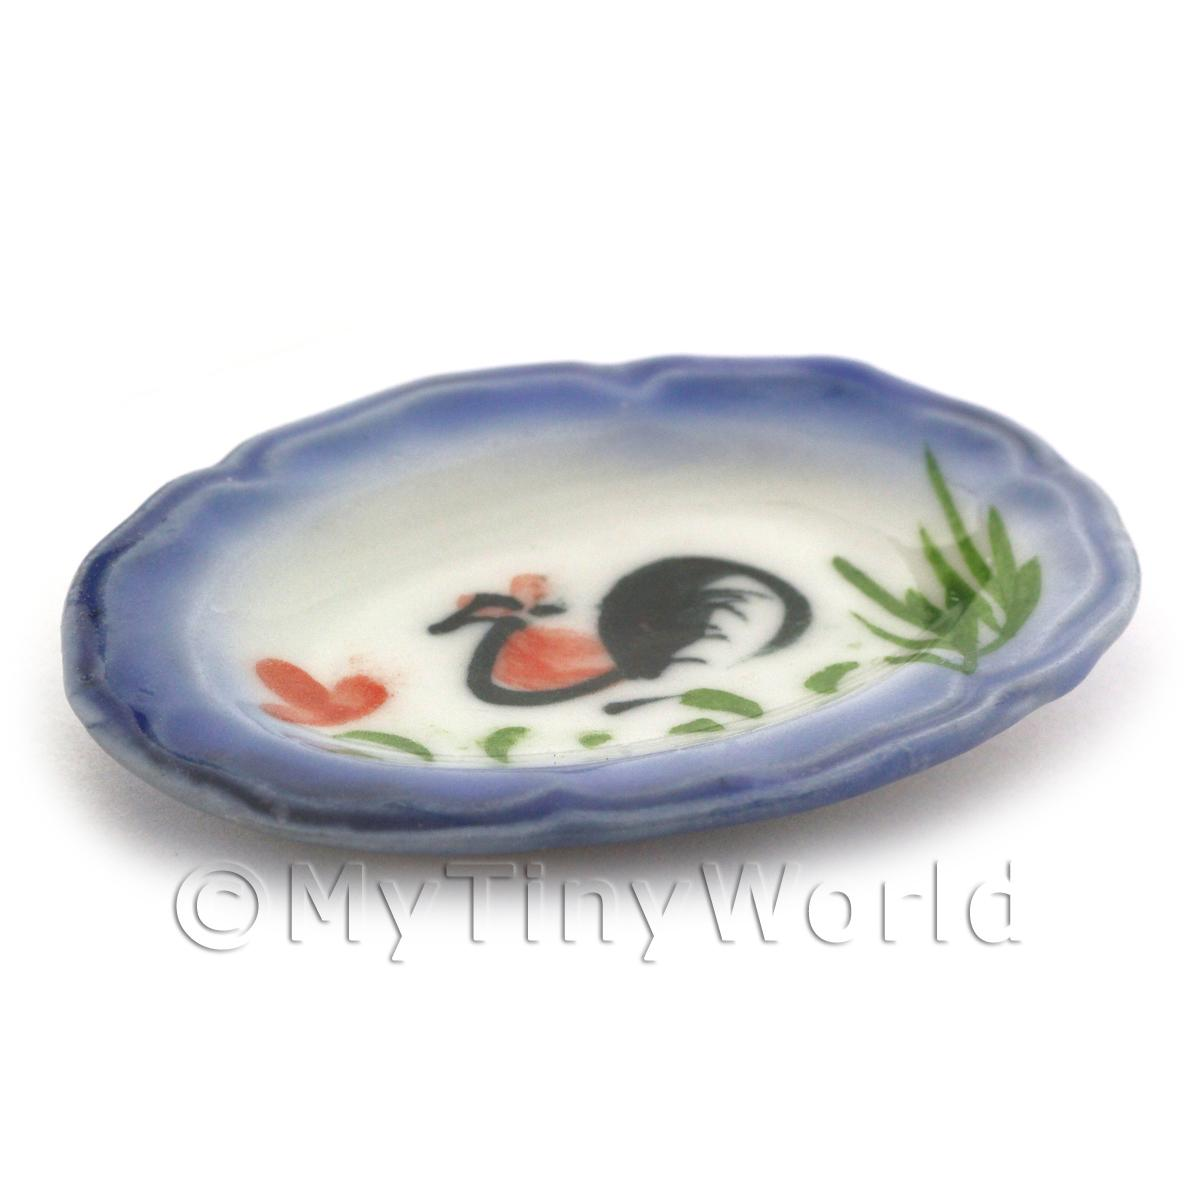 Dolls House Miniature 40mm x 54mm White Ceramic Cockerel Plate With Blue Edge